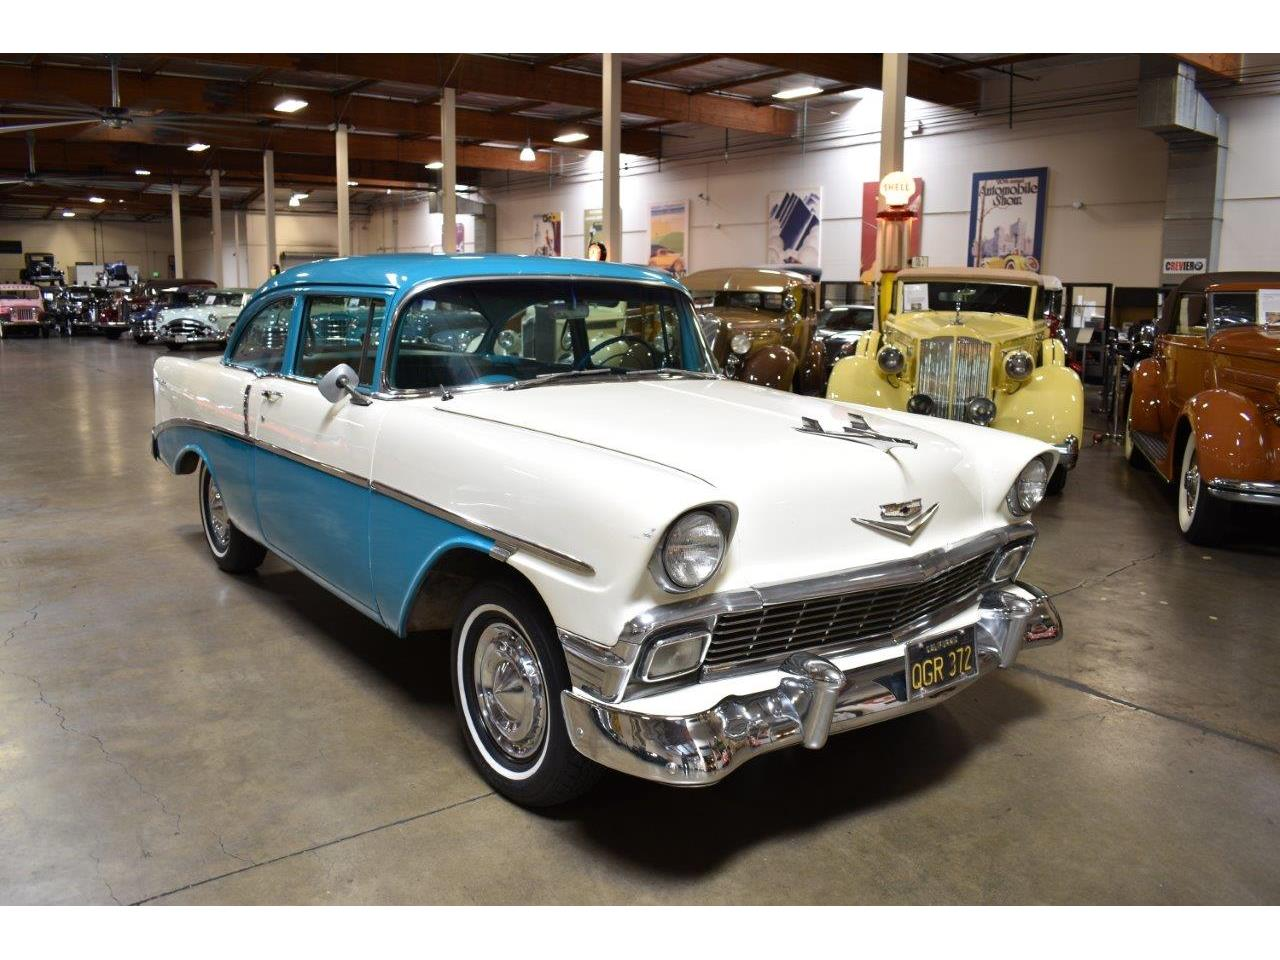 Large Picture of Classic '56 Chevrolet Bel Air located in Costa Mesa California - $19,900.00 Offered by Crevier Classic Cars - Q5GK